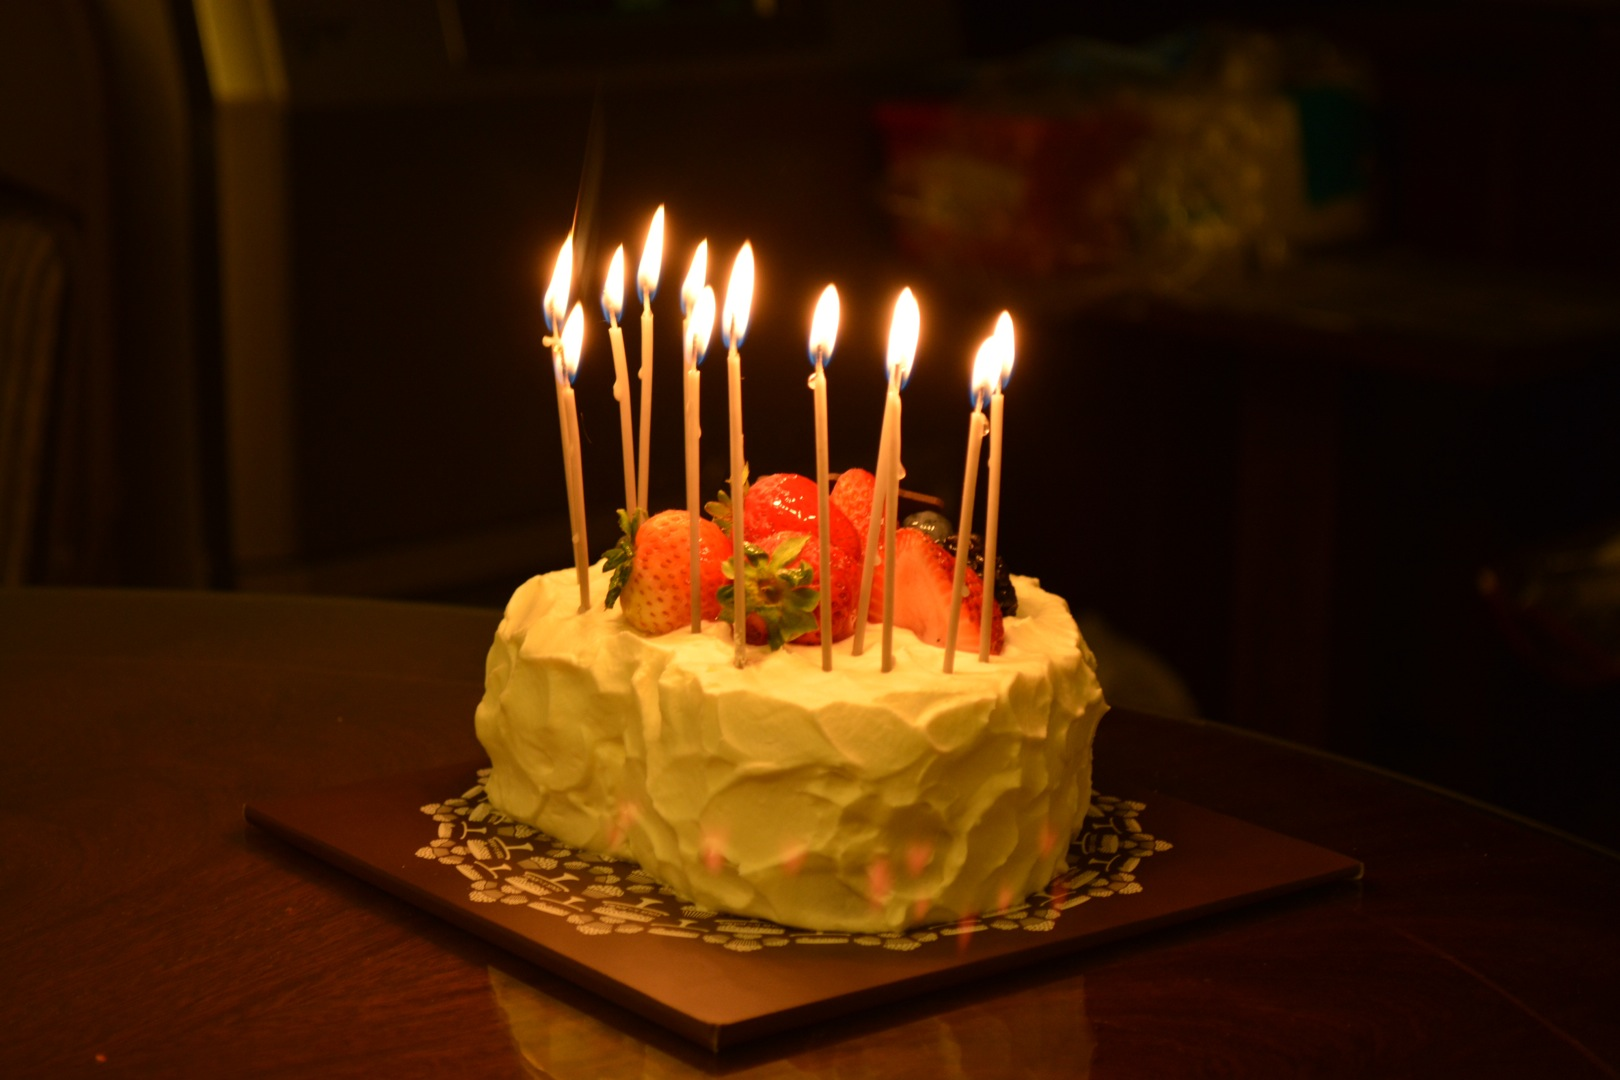 pic of birthday cake with candles